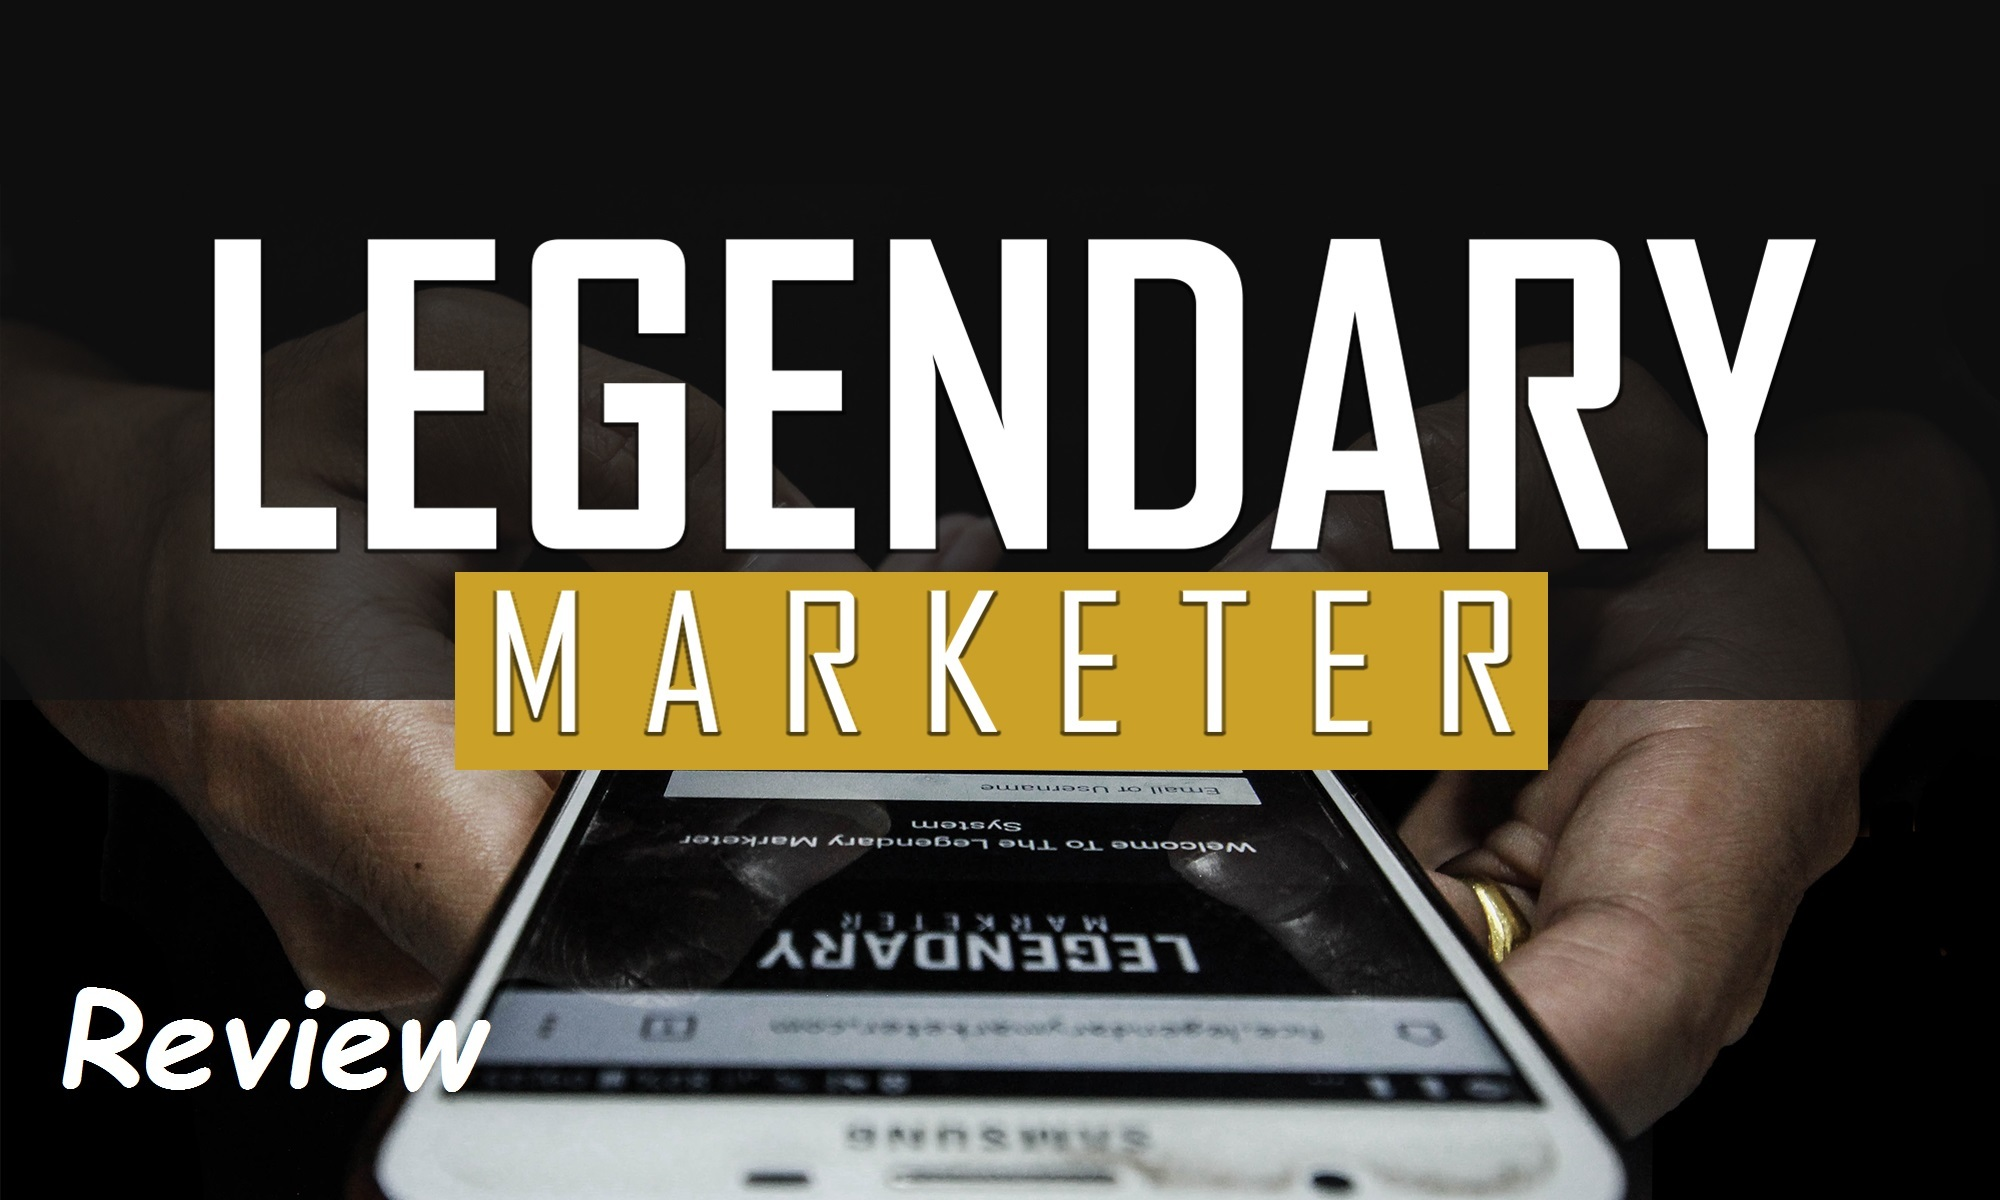 Legendary Marketer Internet Marketing Program  Offers